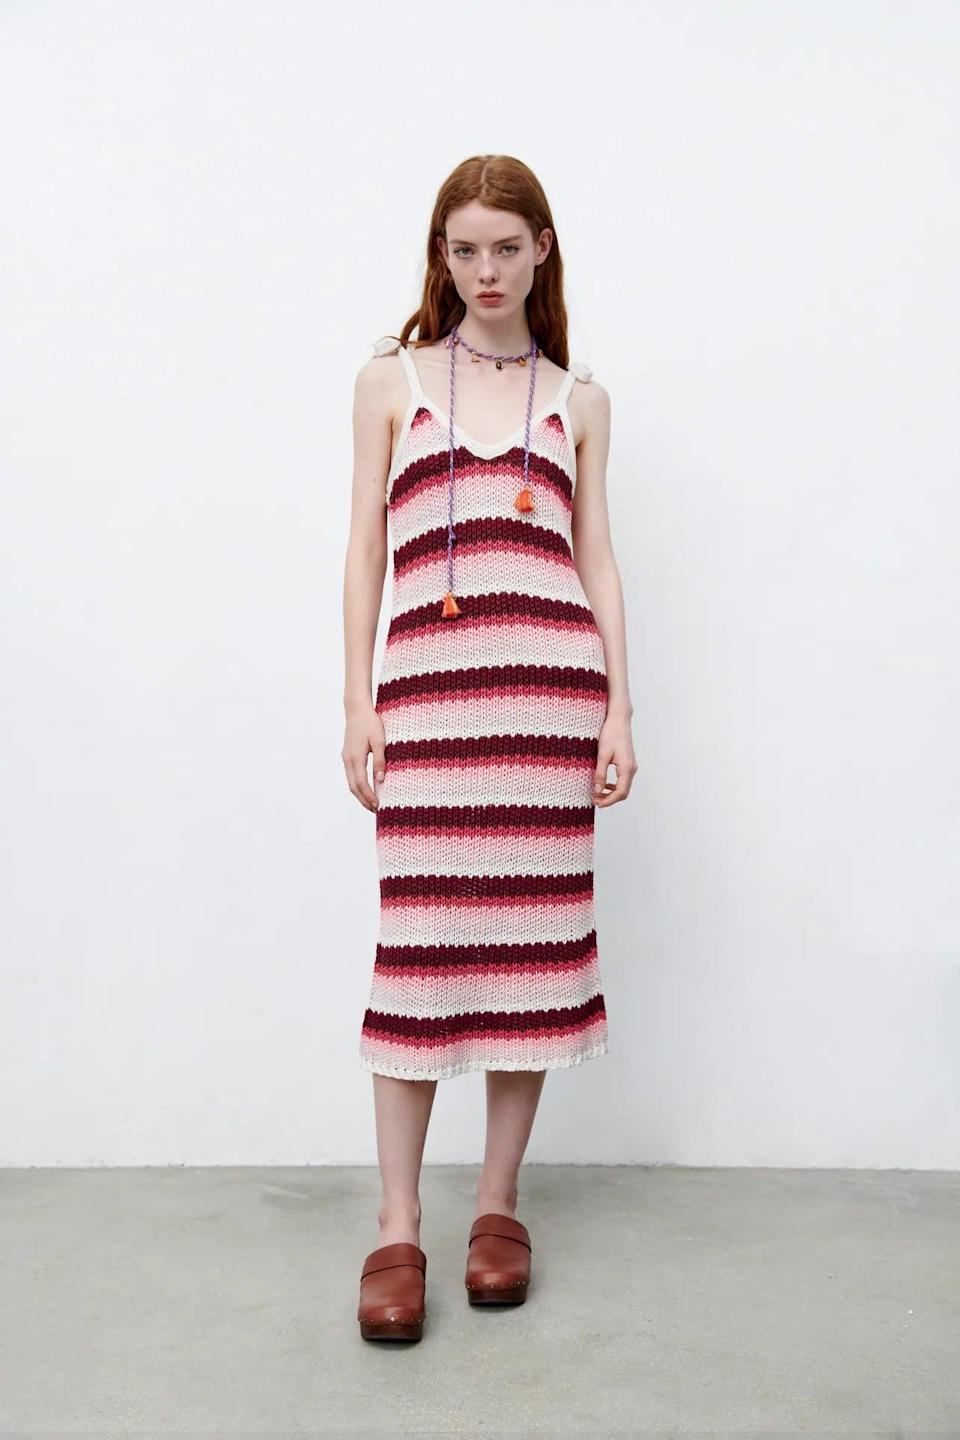 <p>There's something so artsy about this <span>Striped Knit Dress</span> ($70); it makes us think it'd be ideal for a day at the museum. Pair it with low kitten heels, and you'll be on your way.</p>